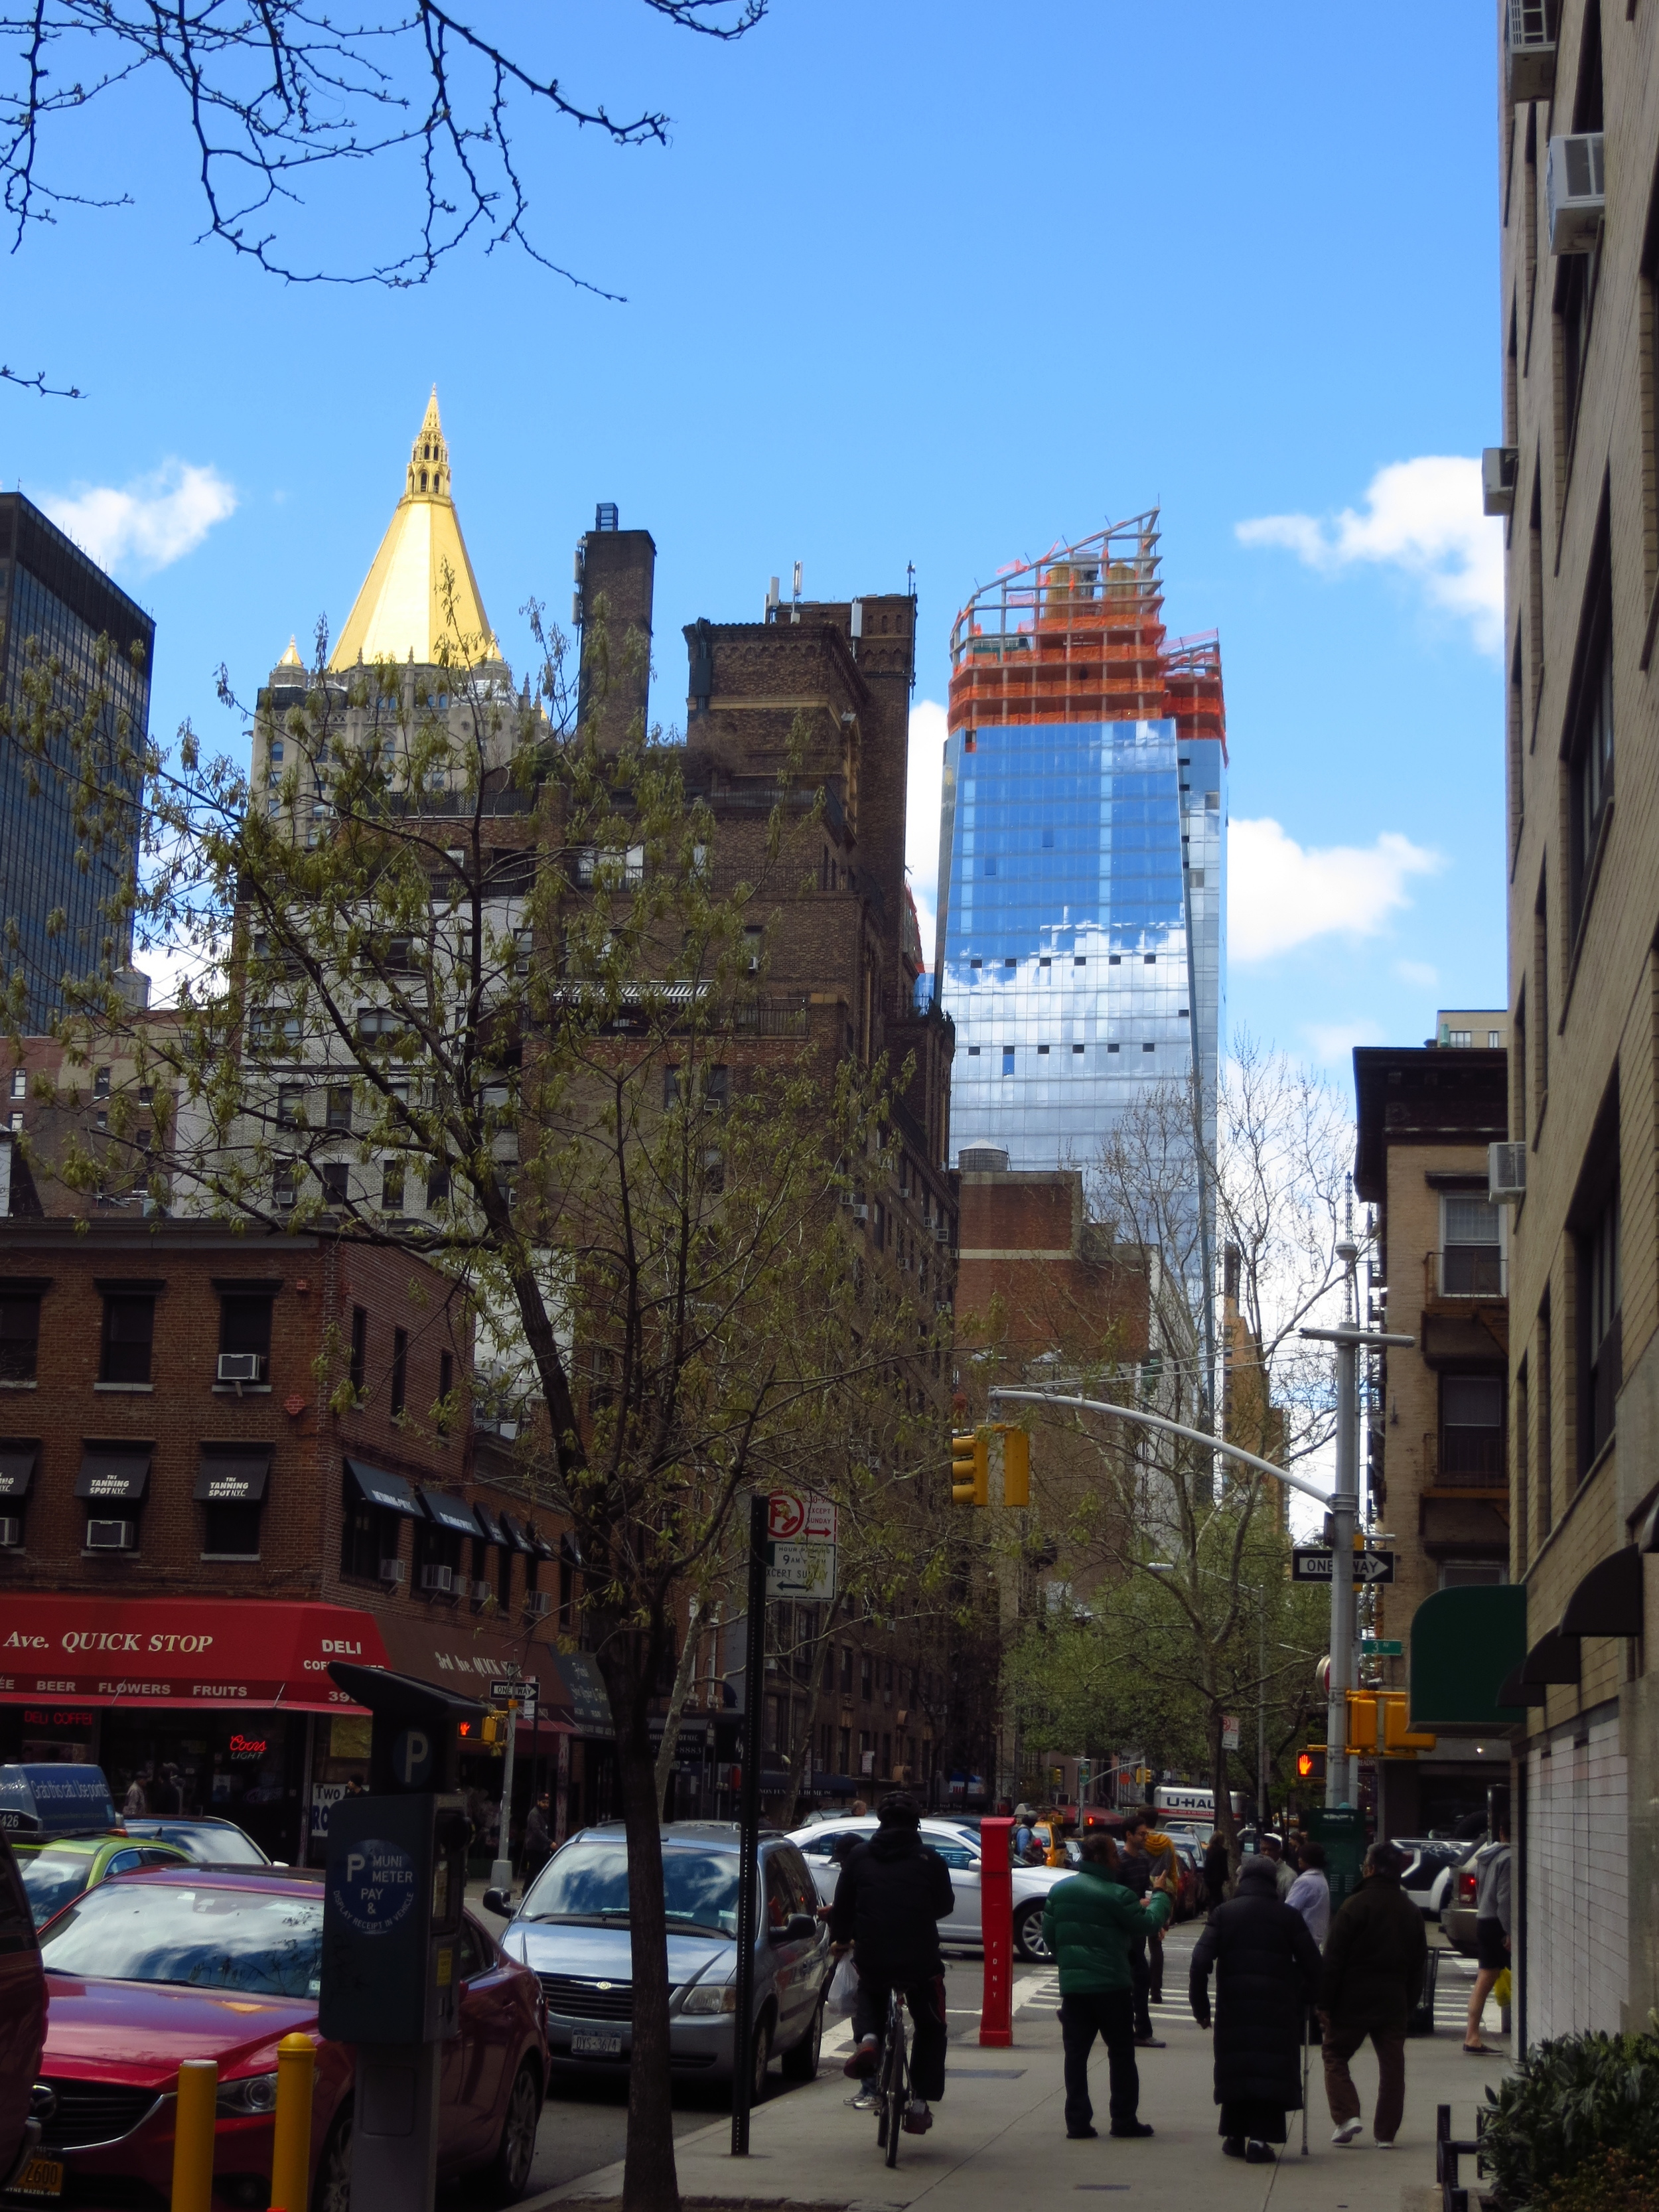 Street view w/New York Life Building (the gold top one)